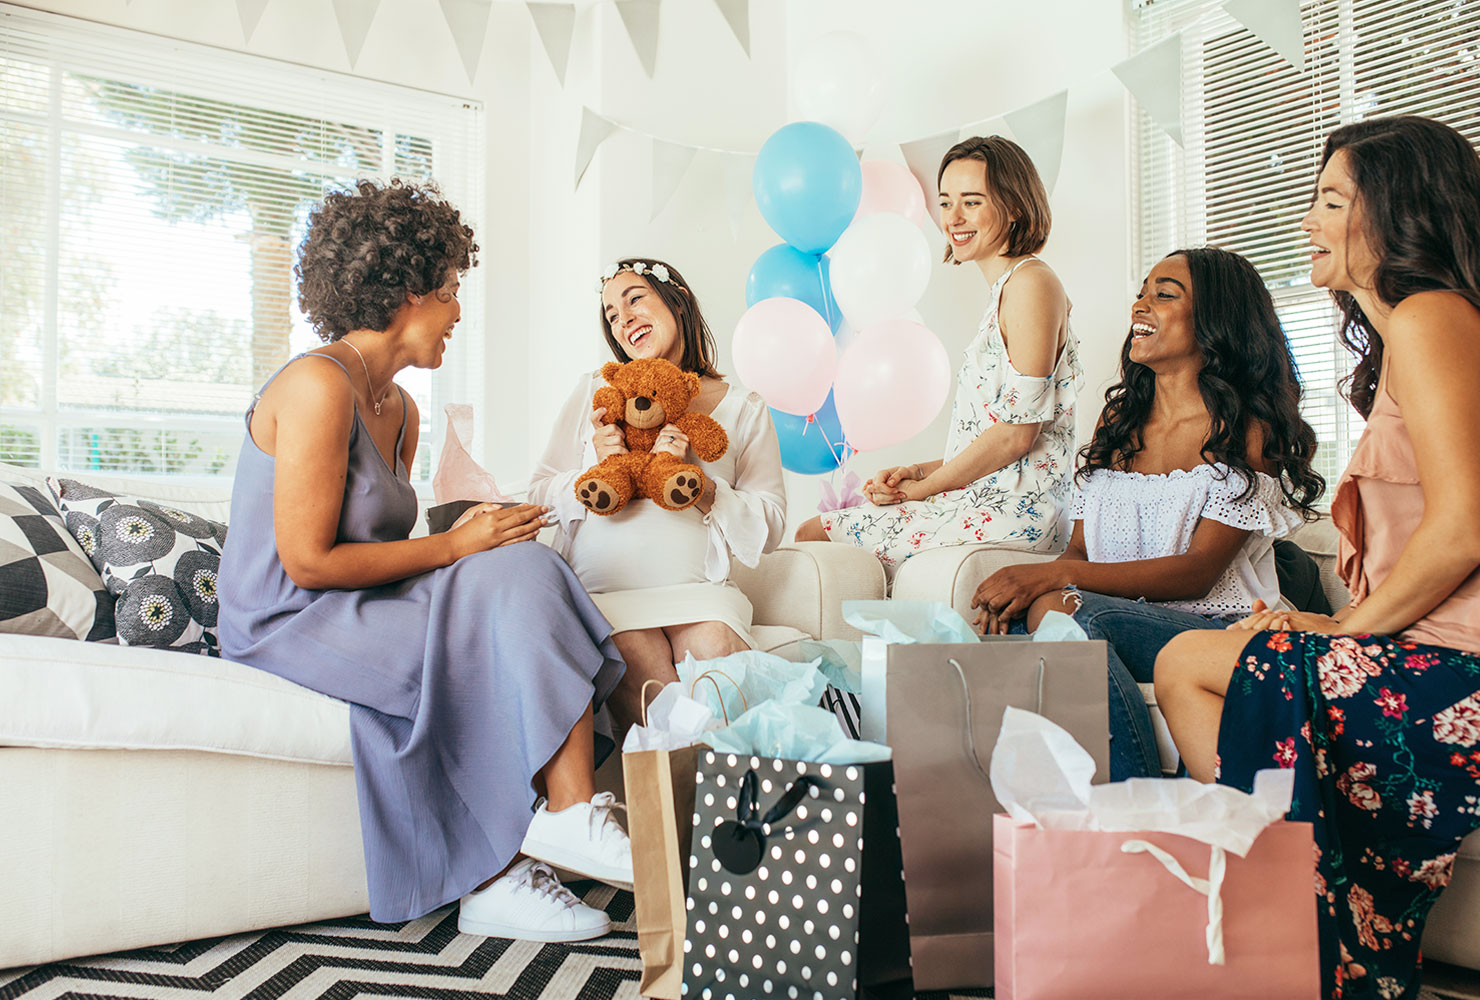 Pregnant mom surrounded by her friends at her baby shower.